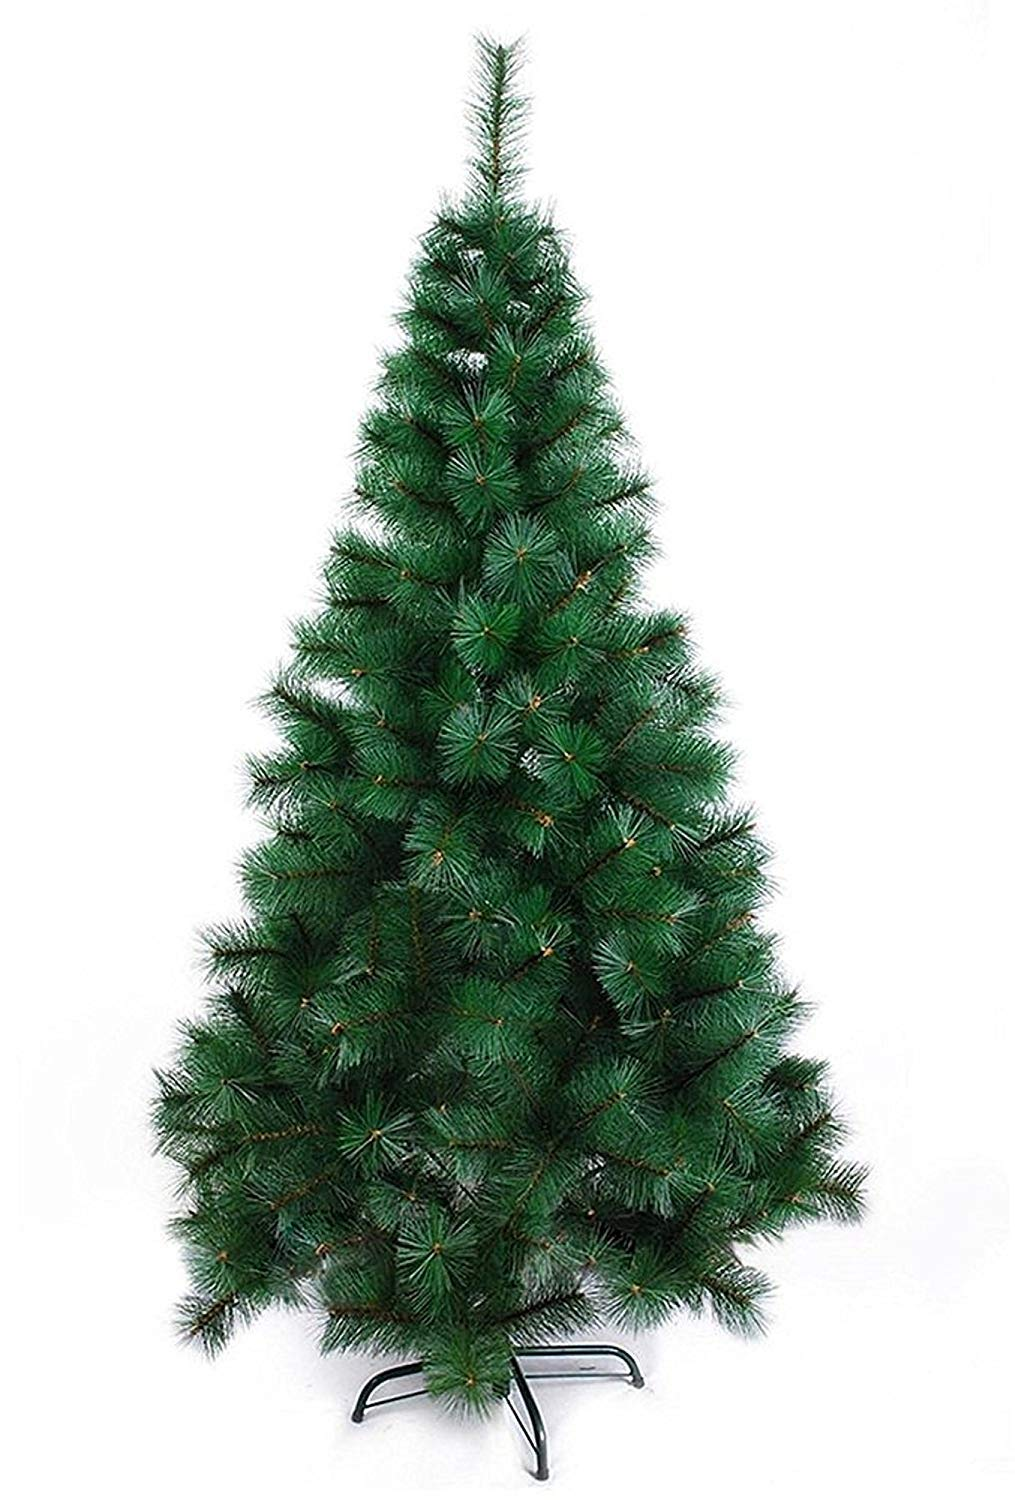 Buy Theme My Party Artificial 7ft Christmas Tree Xmas Pine Tree With Solid Metal Legs Light Weight Perfect For Christmas Decoration Green 7 Ft Online At Low Prices In India Amazon In